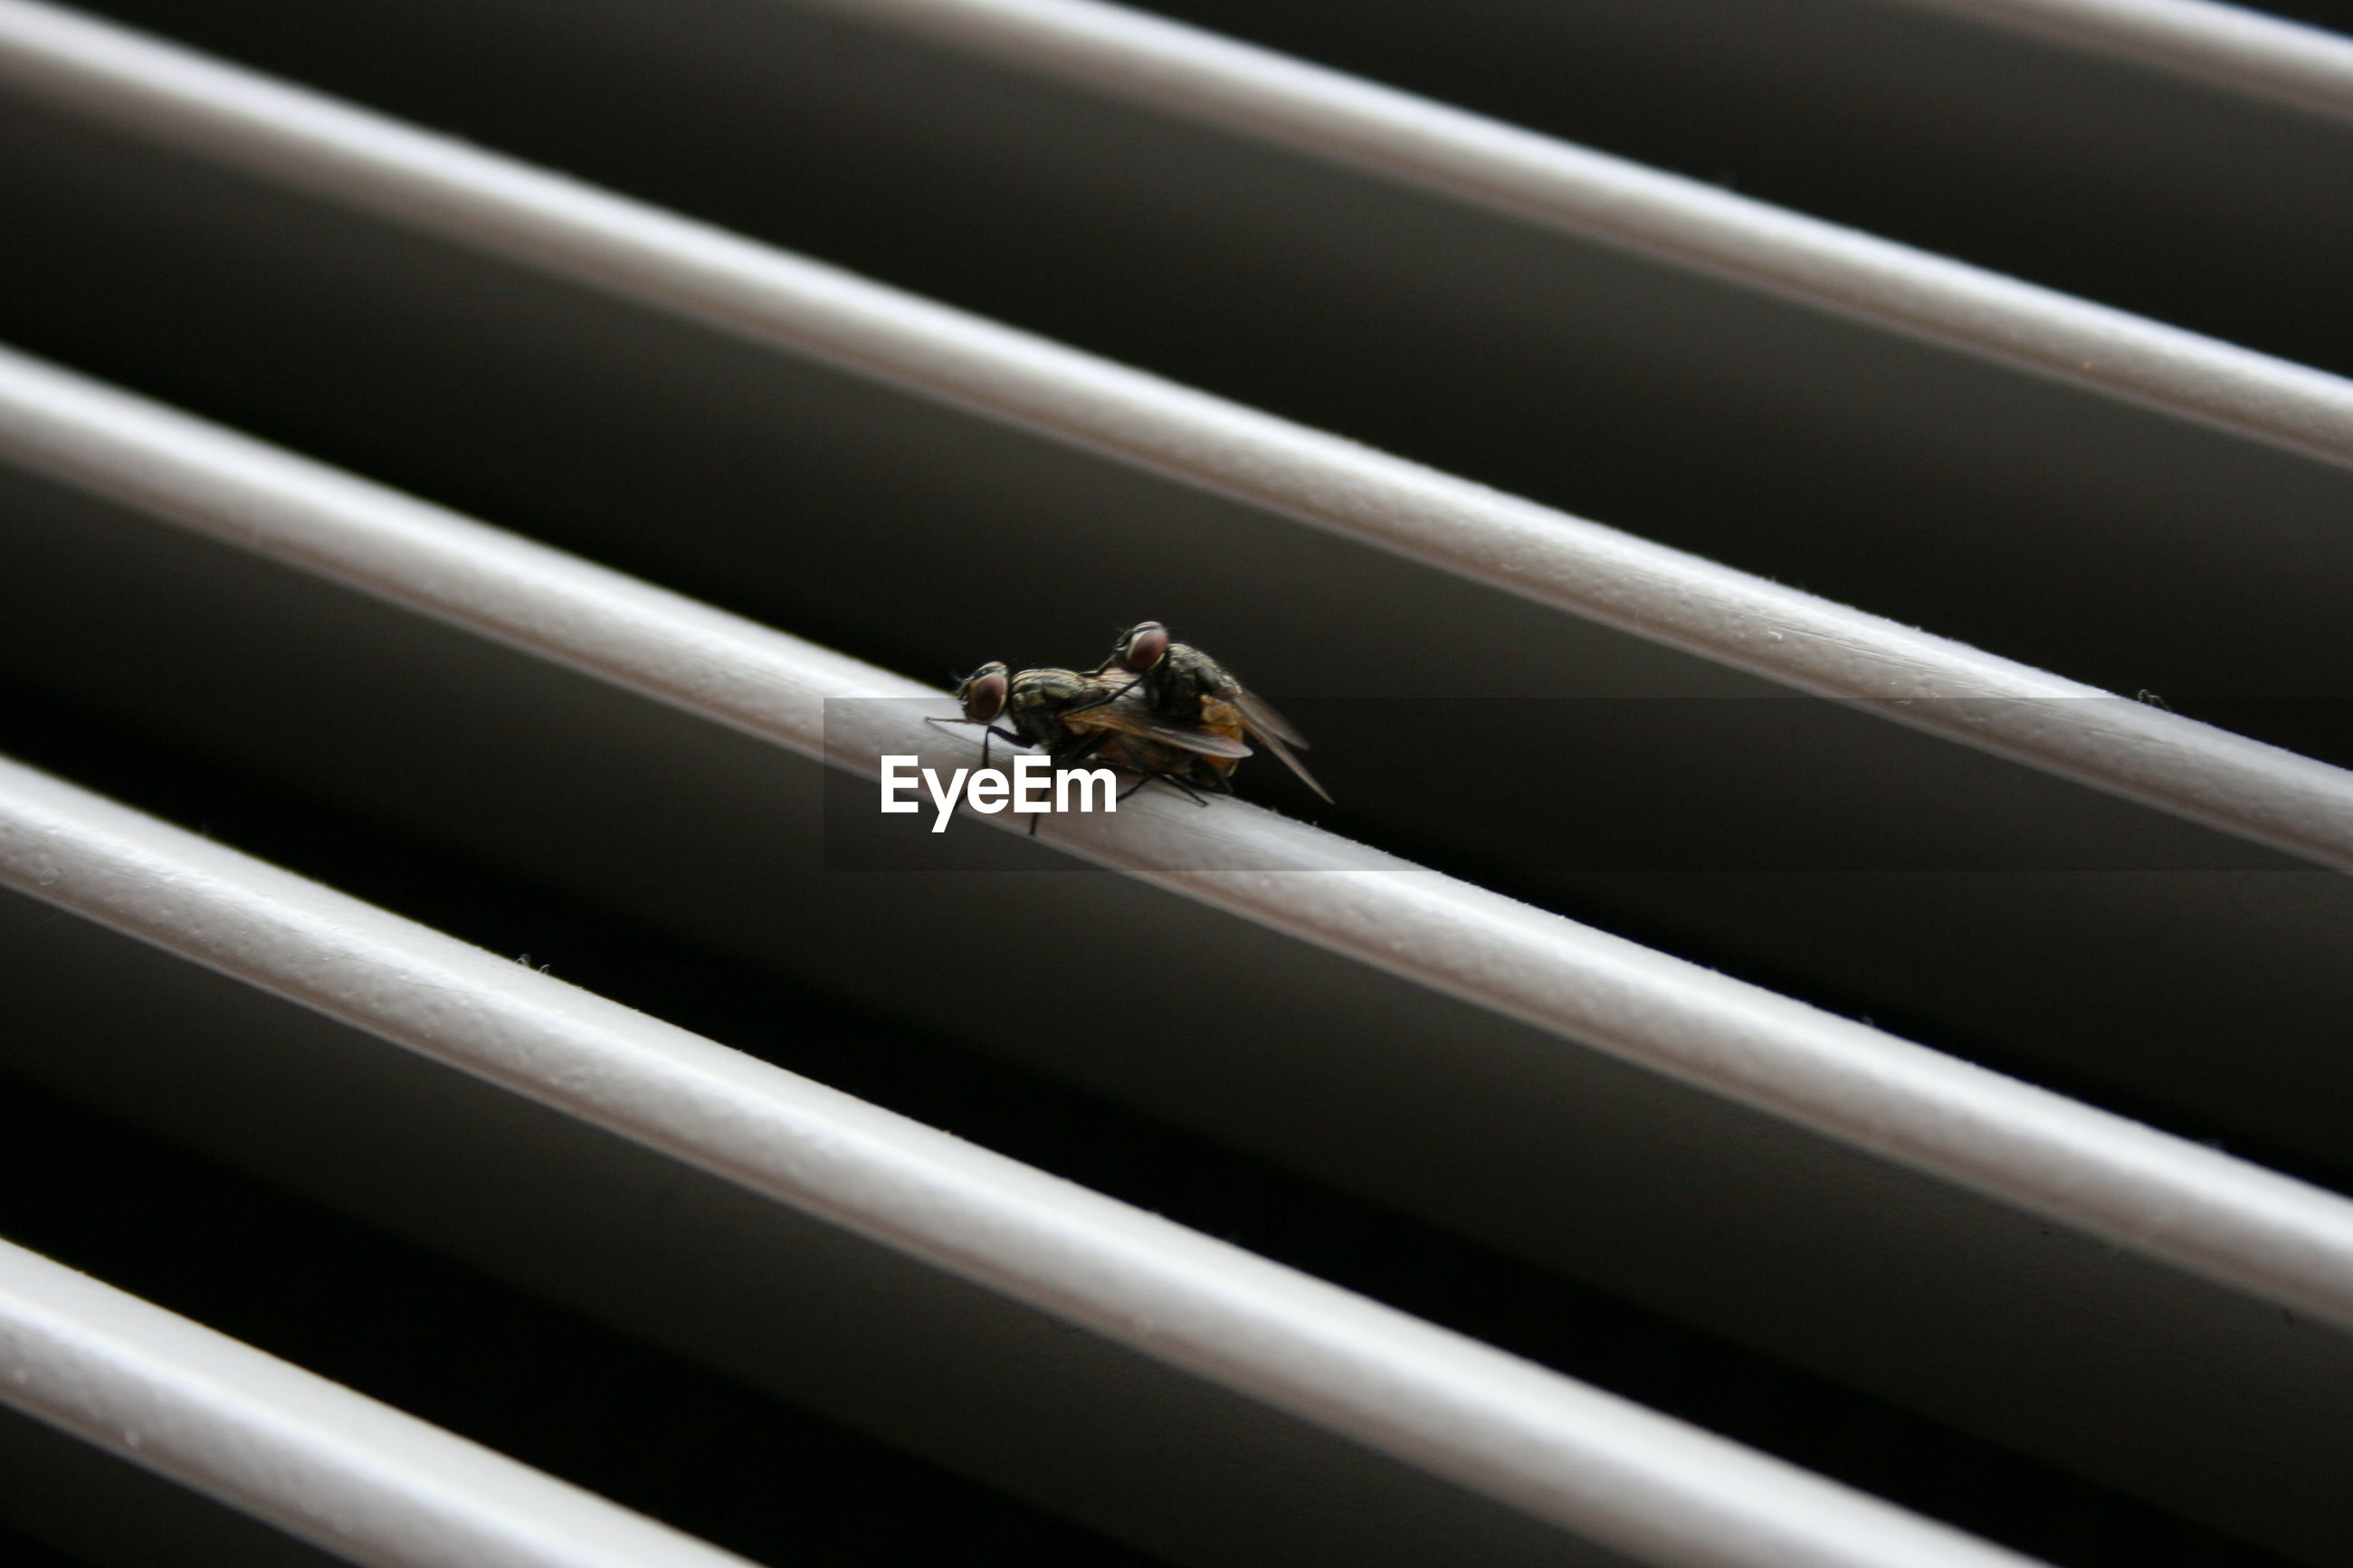 Close-up of houseflies mating on white security bar